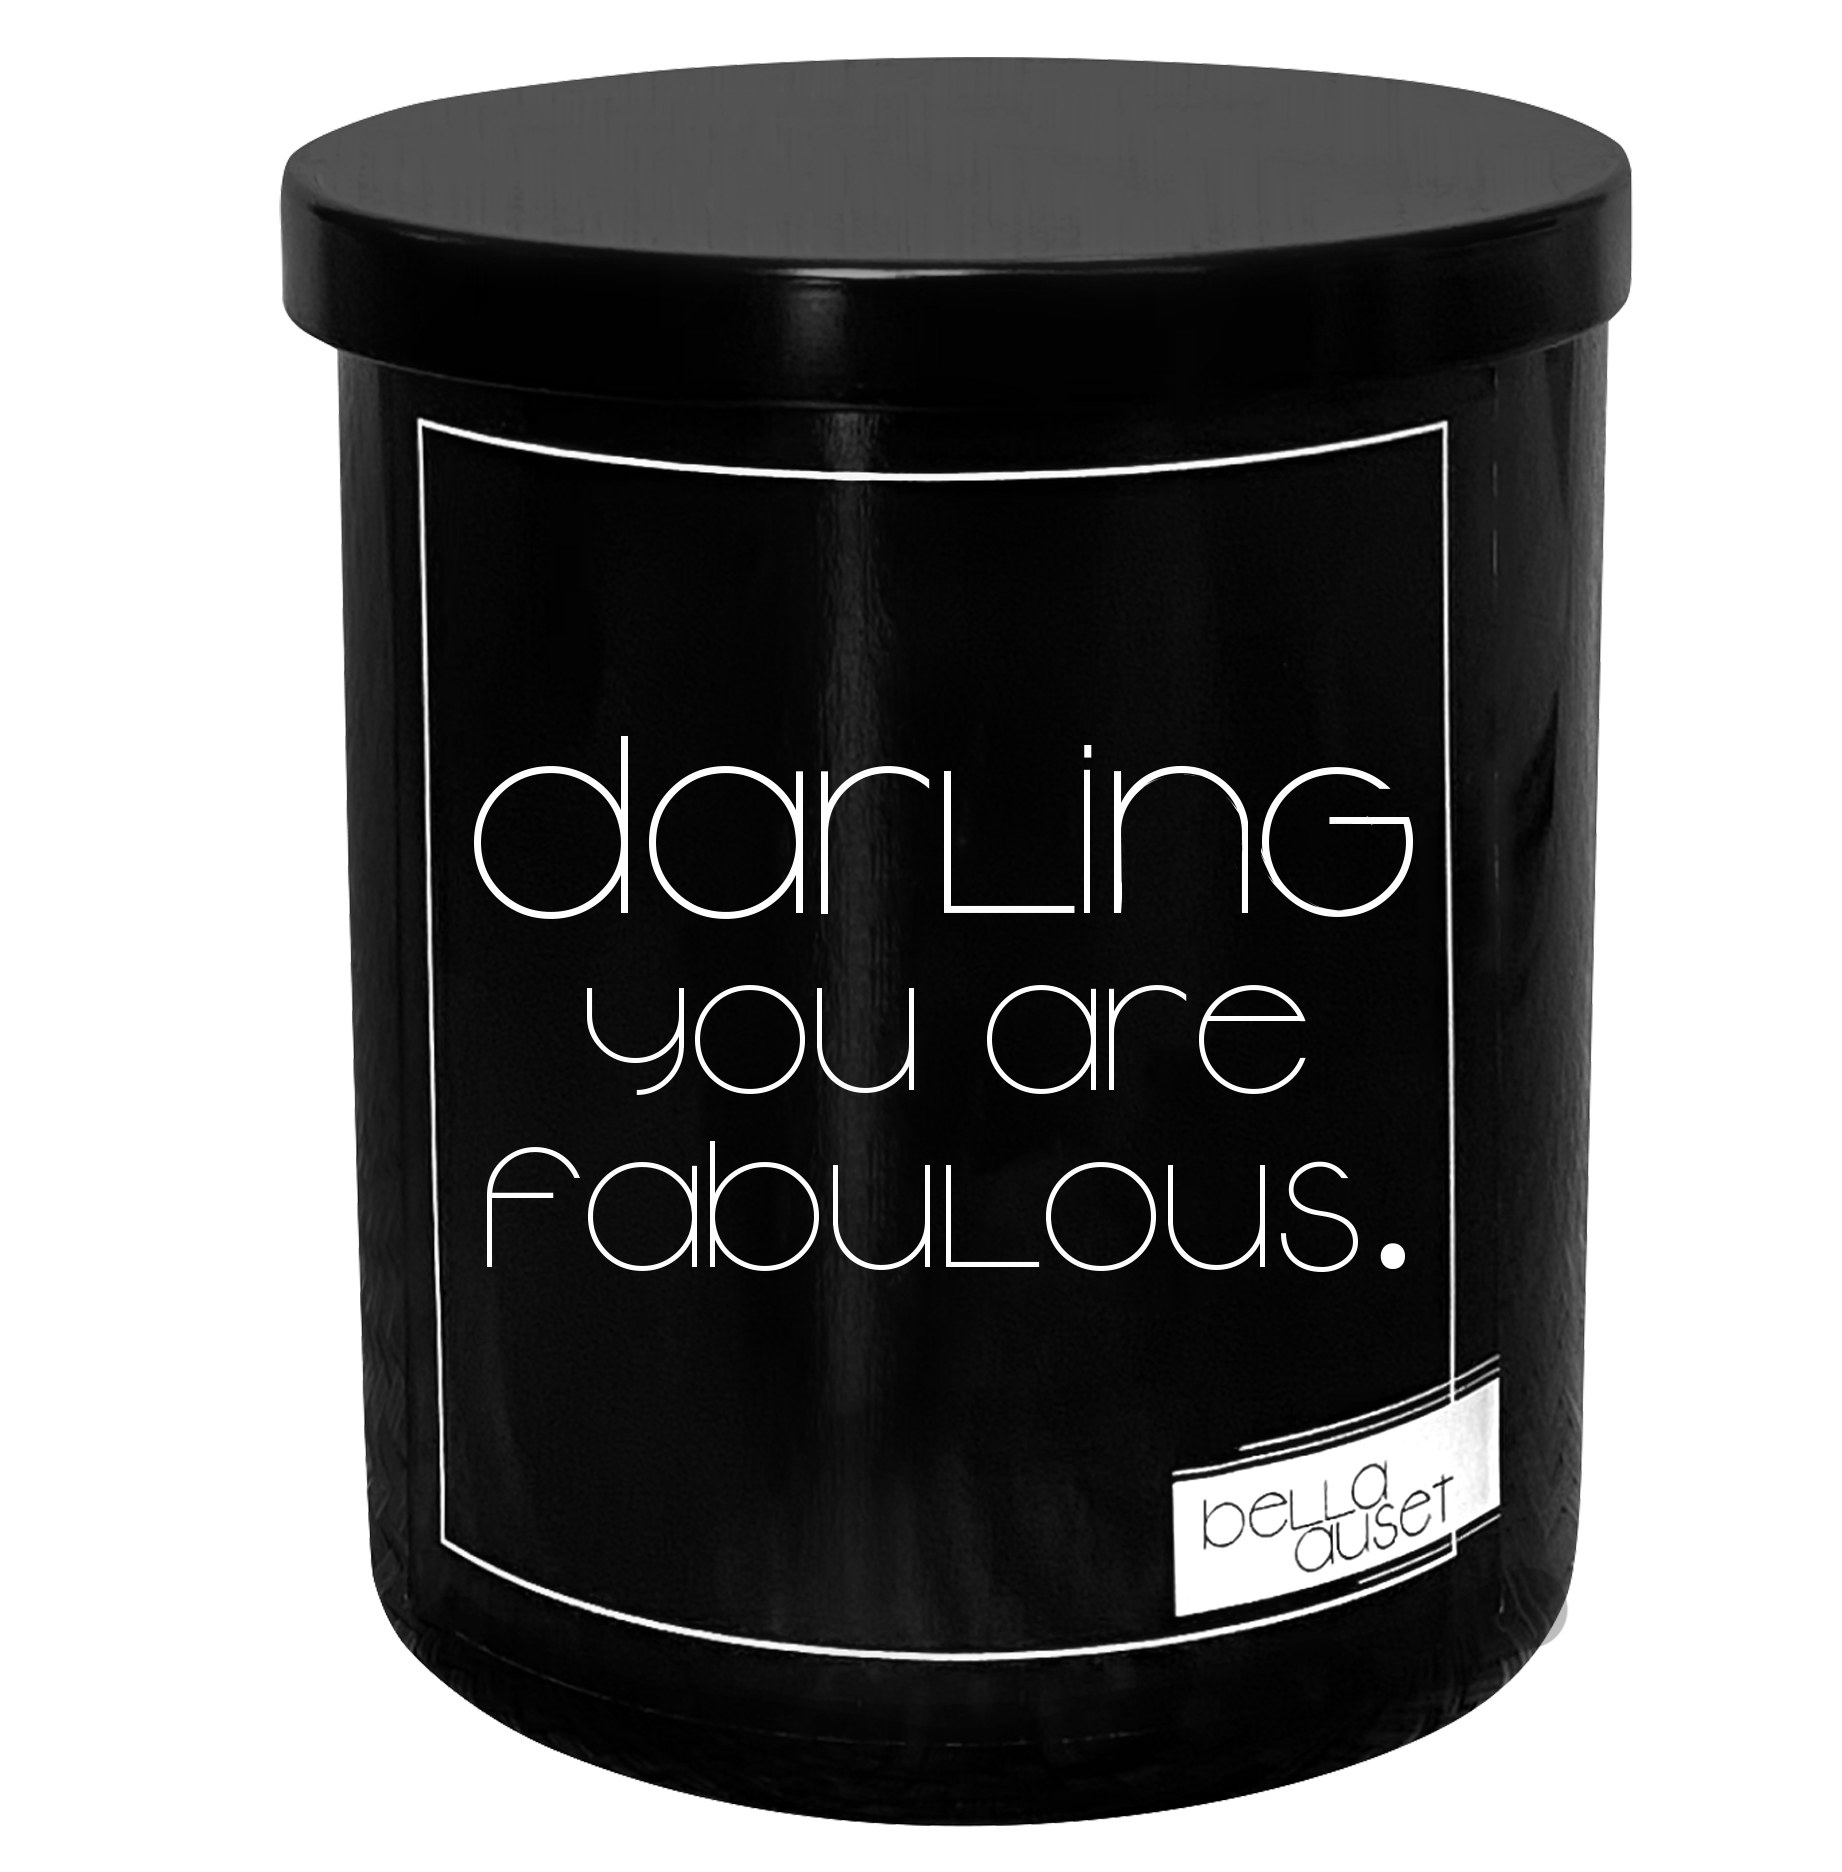 """Black lidded candle that says """"darling you are fabulous."""""""